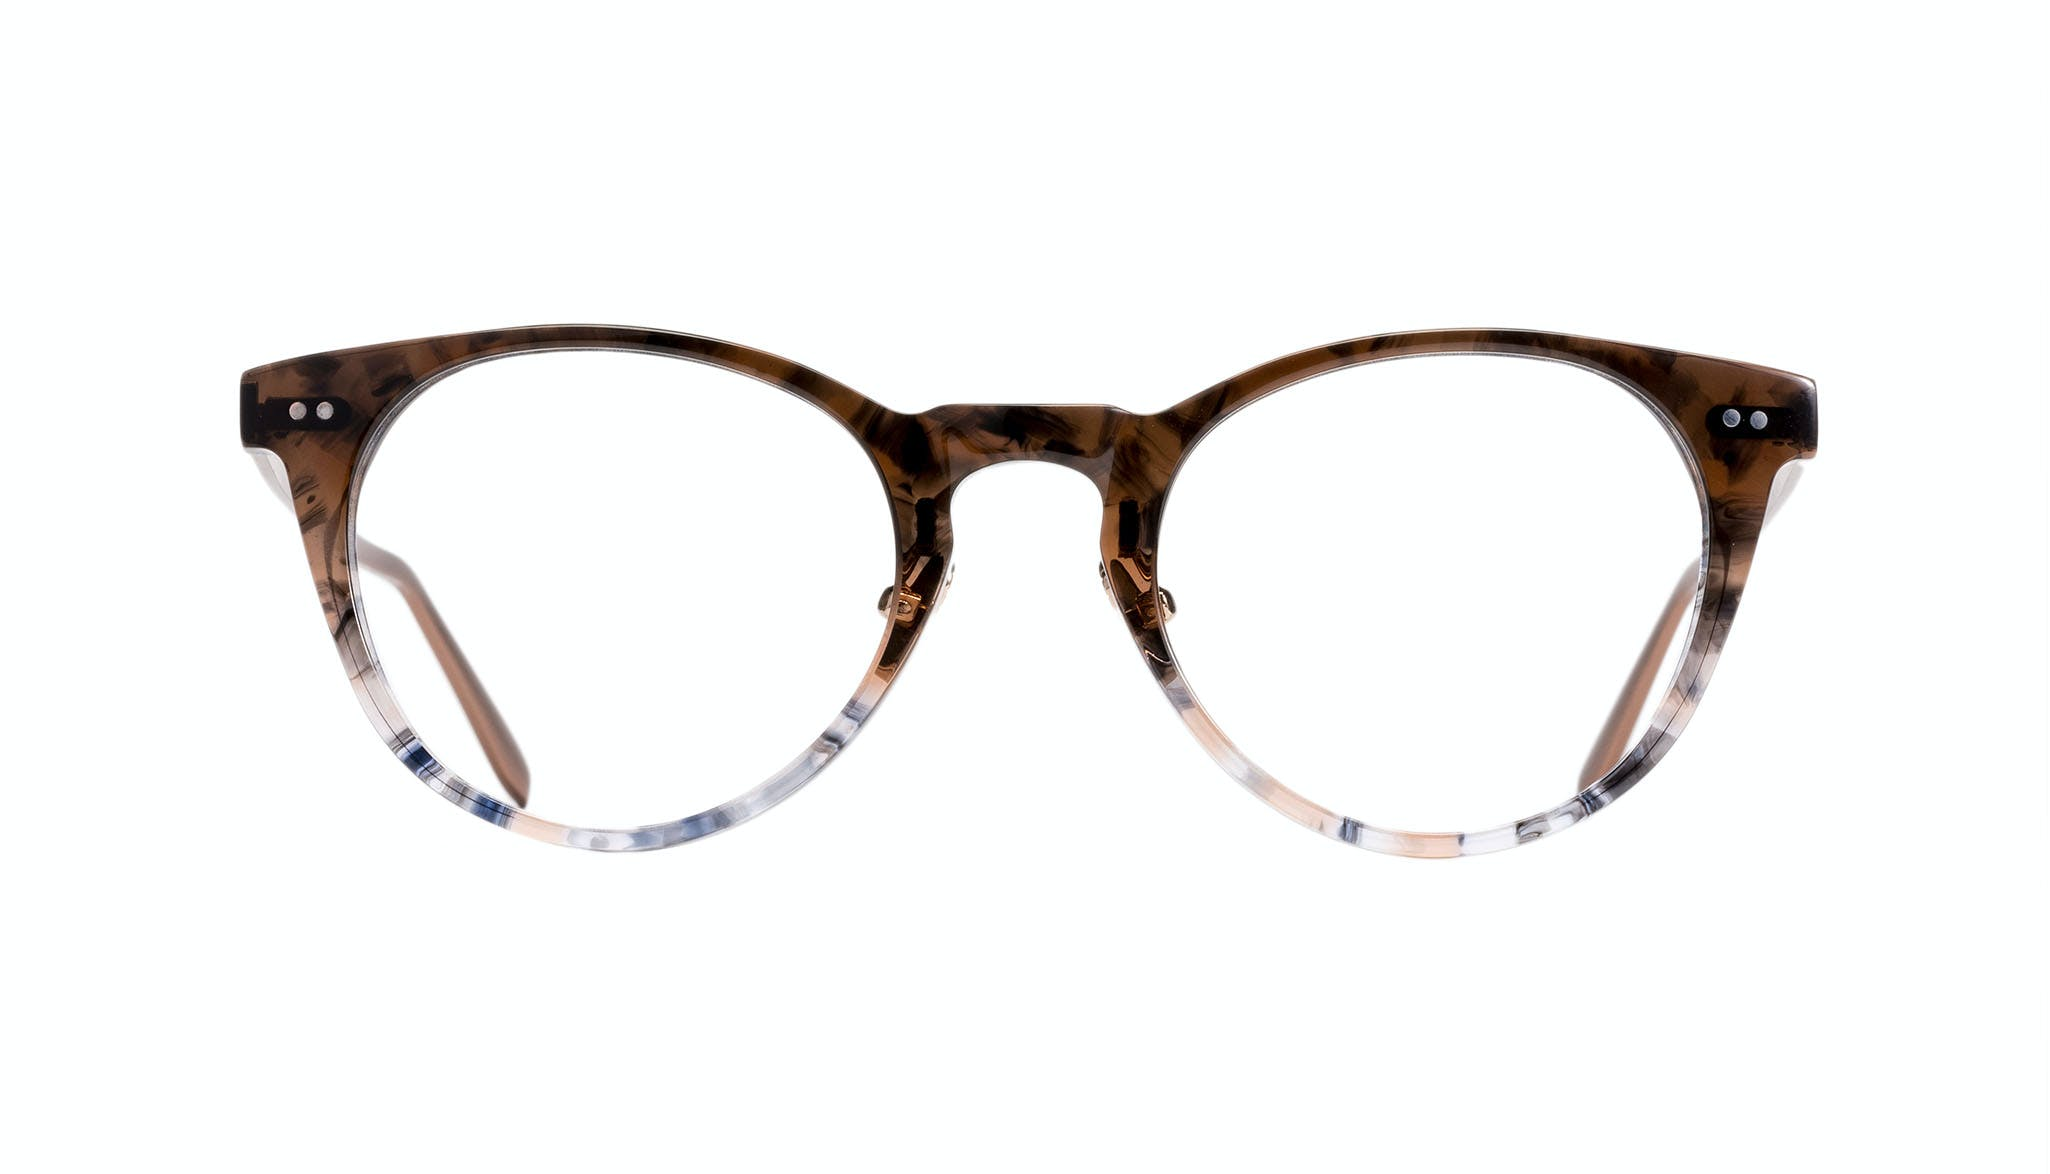 Affordable Fashion Glasses Round Eyeglasses Women Luv Moon Dust Front